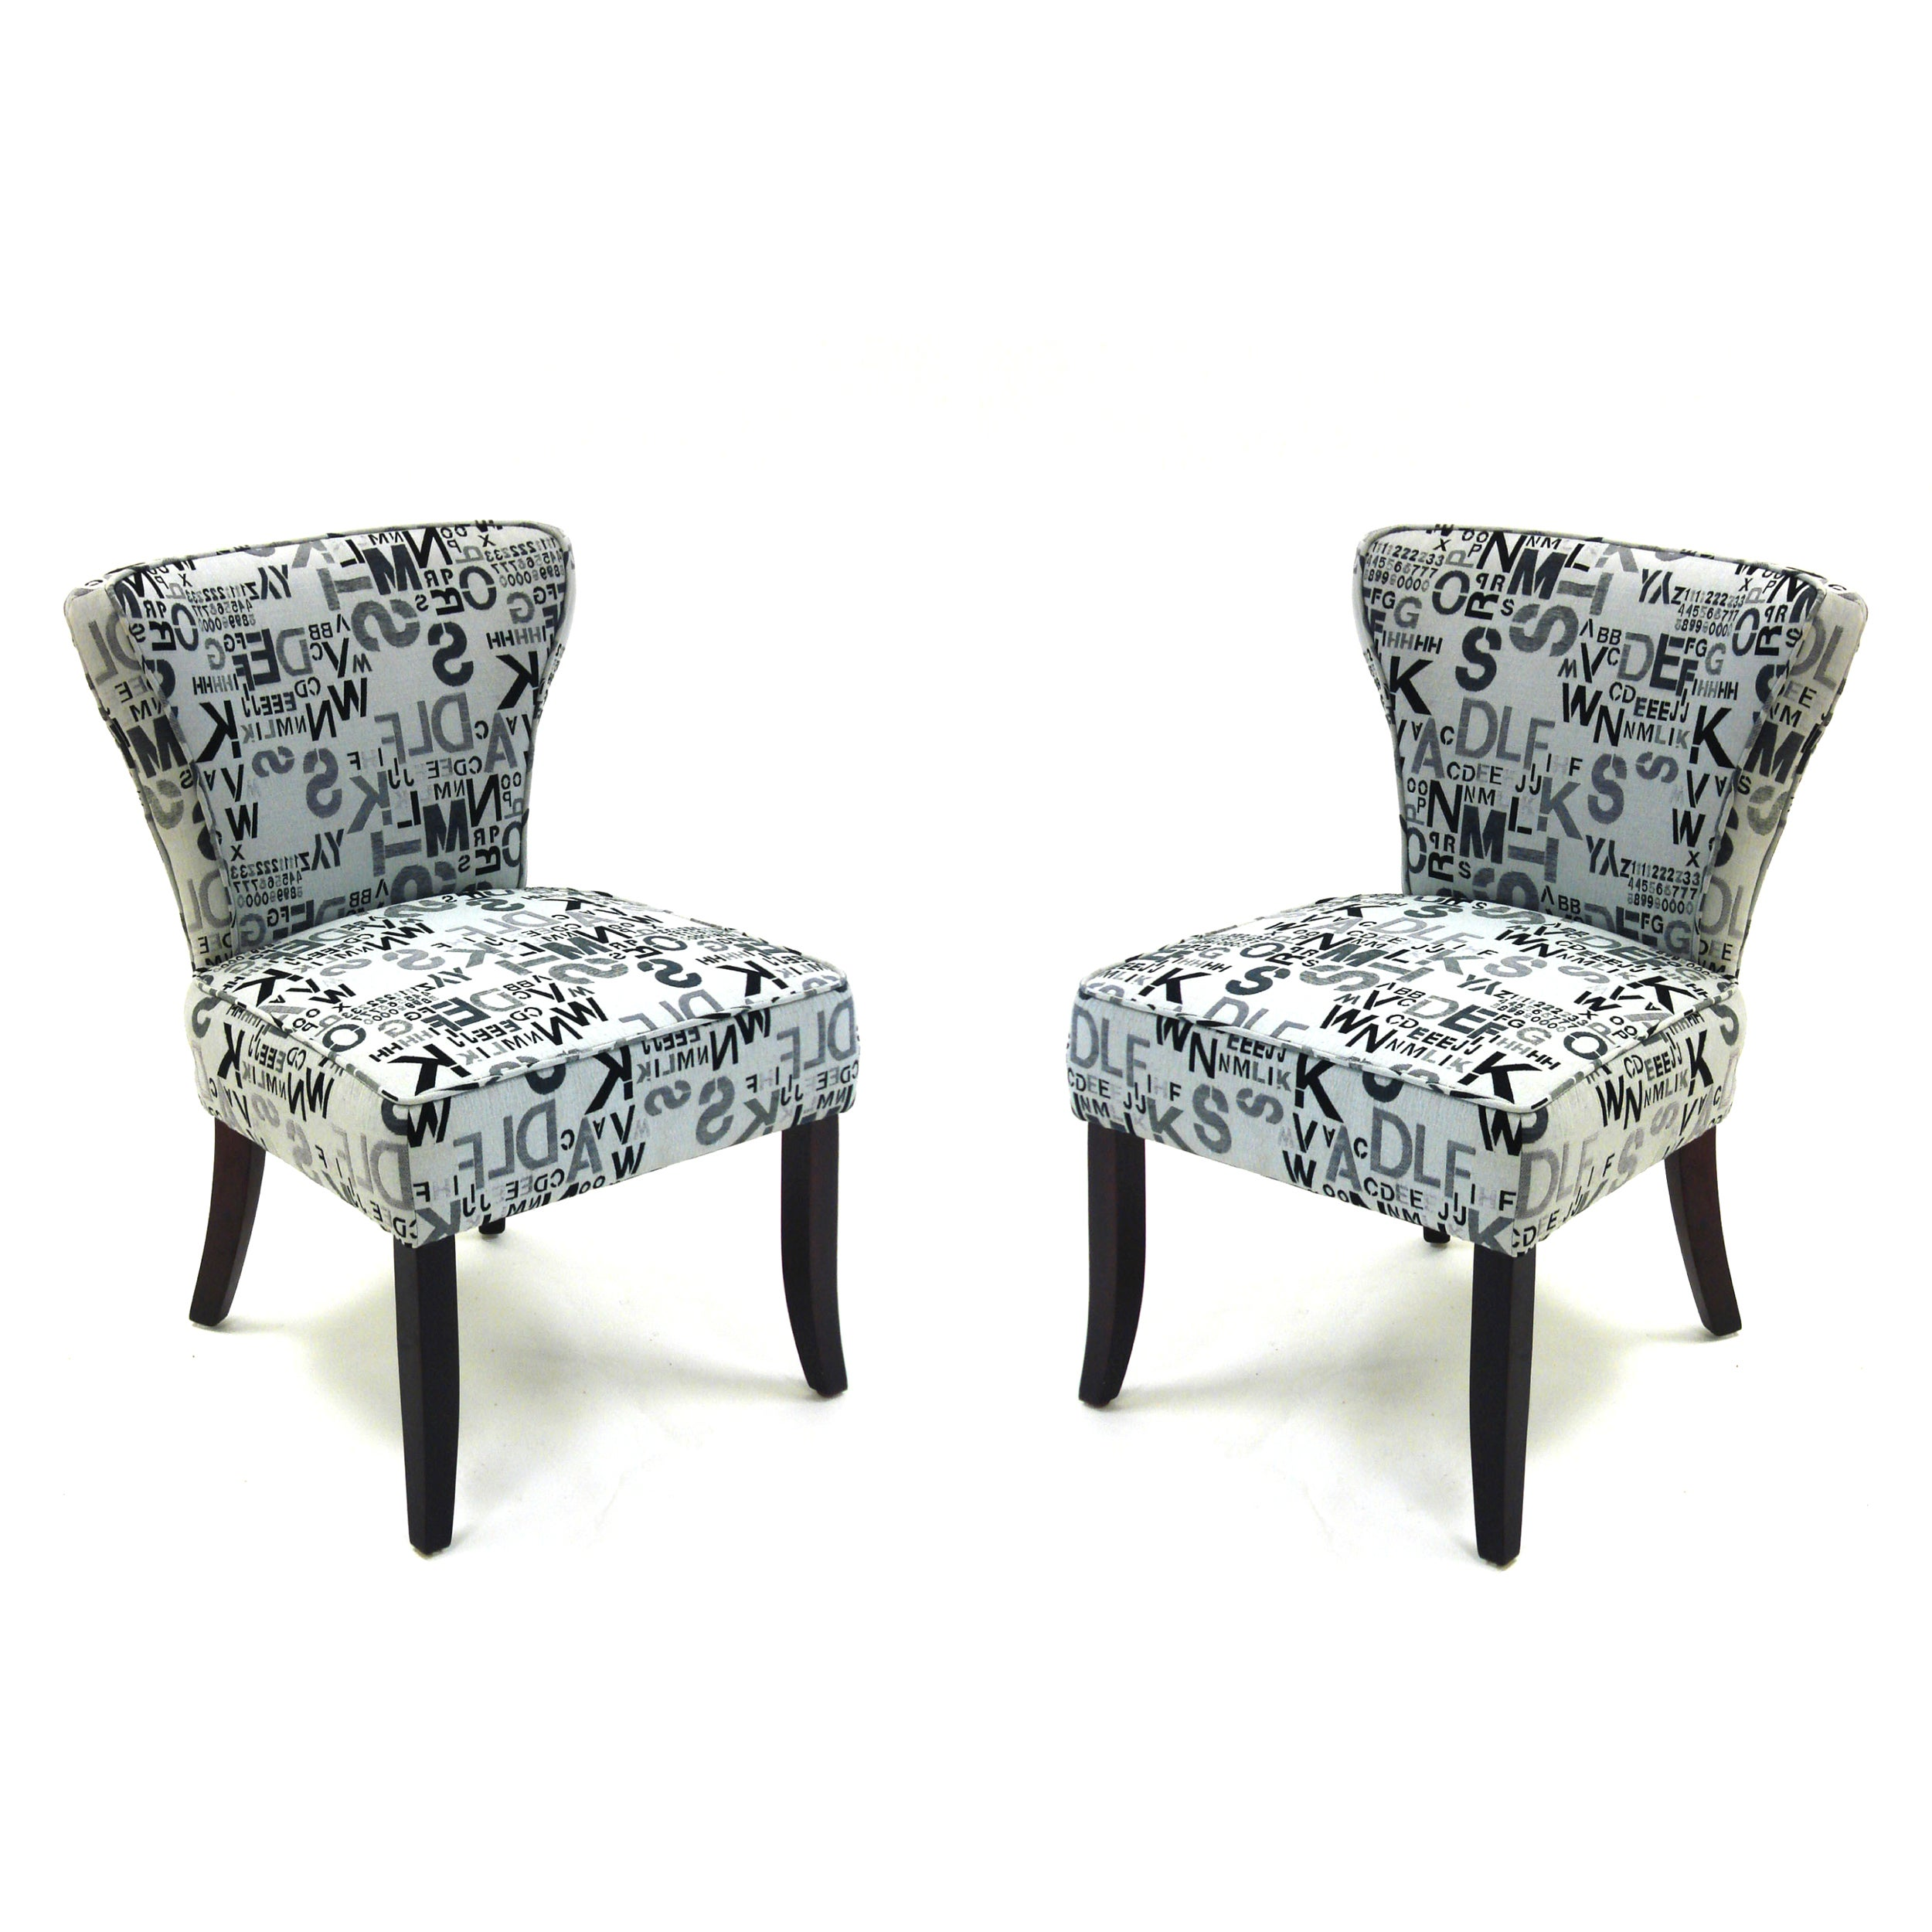 Designer Accent Chairs: Modern Letters Accent Chairs In Alpha Letters Fabric (Set